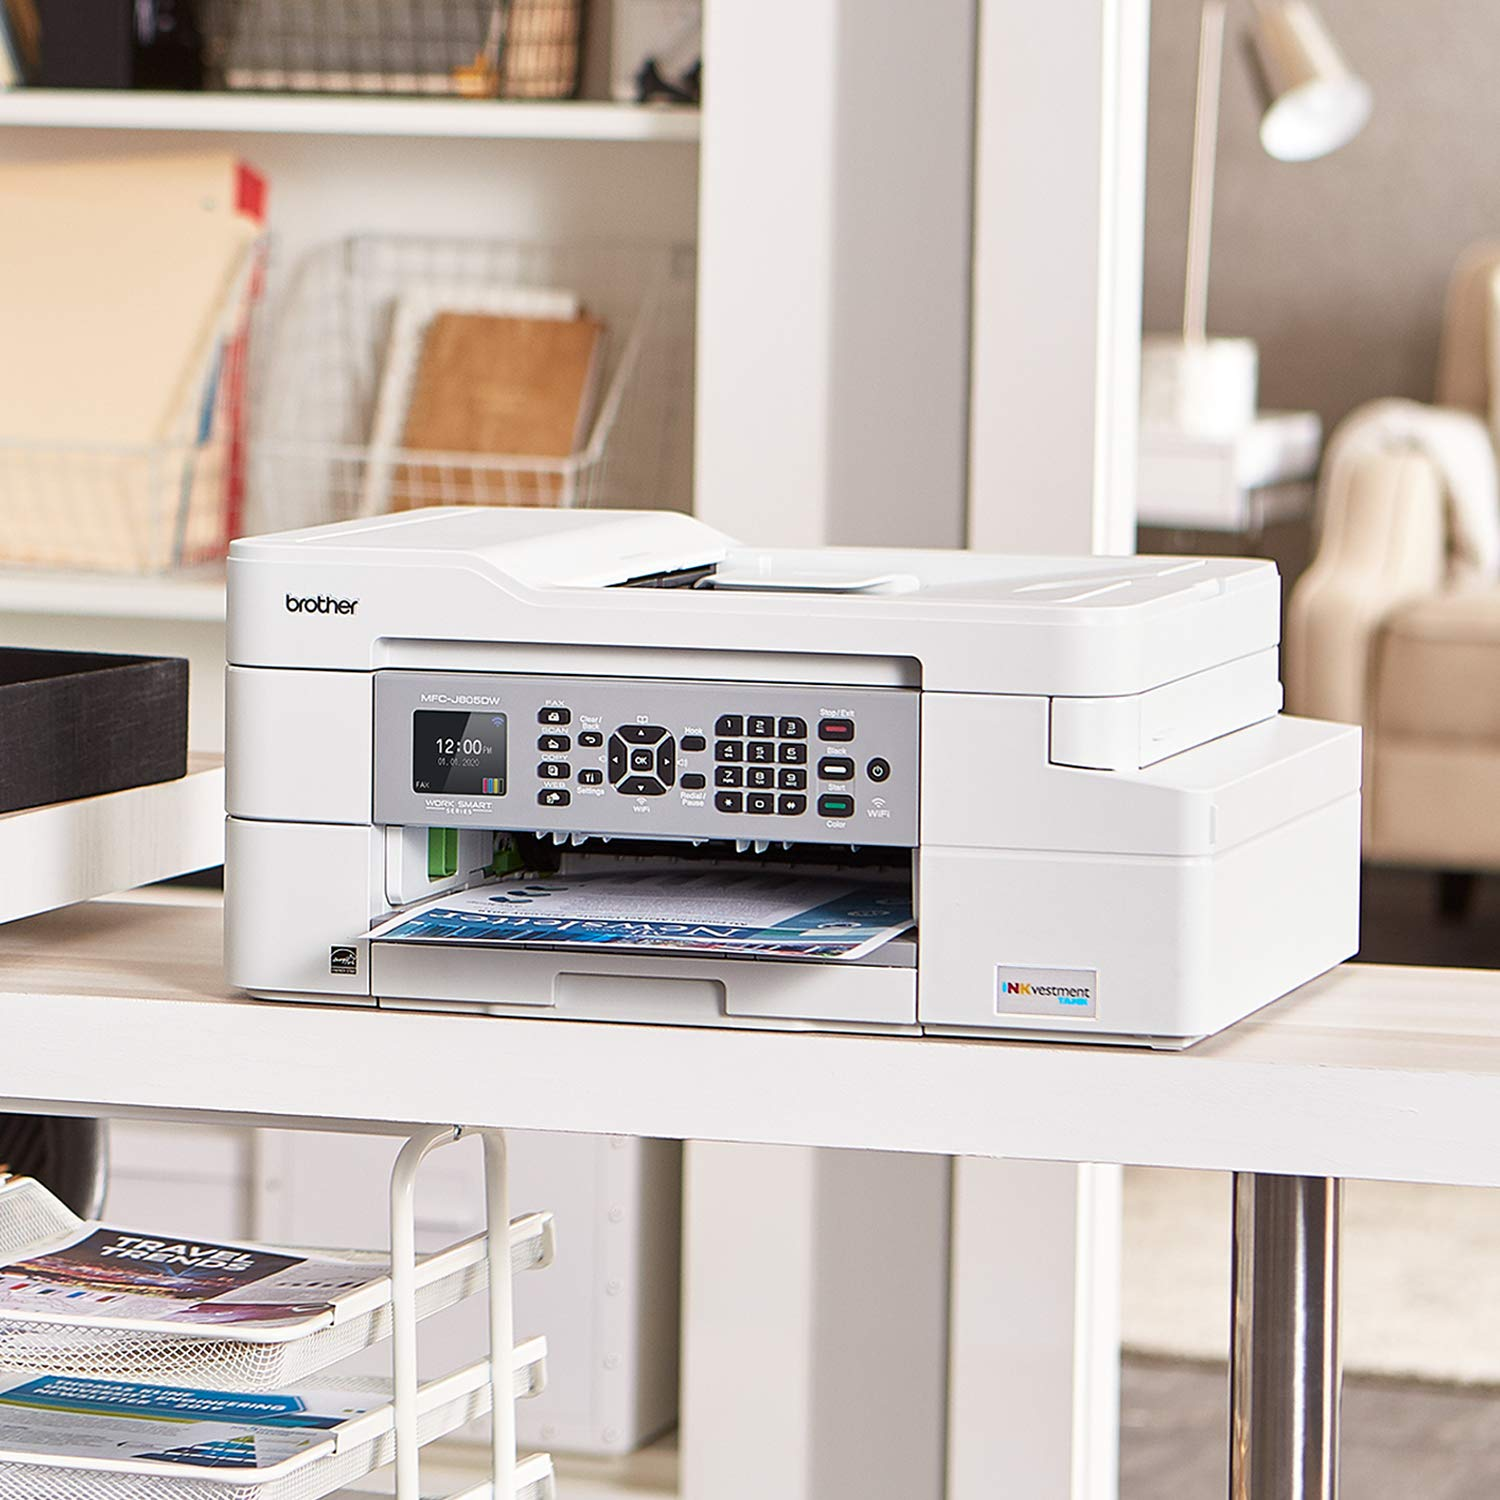 Brother MFC-J805DW INKvestmentTank Color Inkjet All-in-One Printer with Mobile Device and Duplex Printing with Up To 1-Year of Ink In-box by Brother (Image #2)